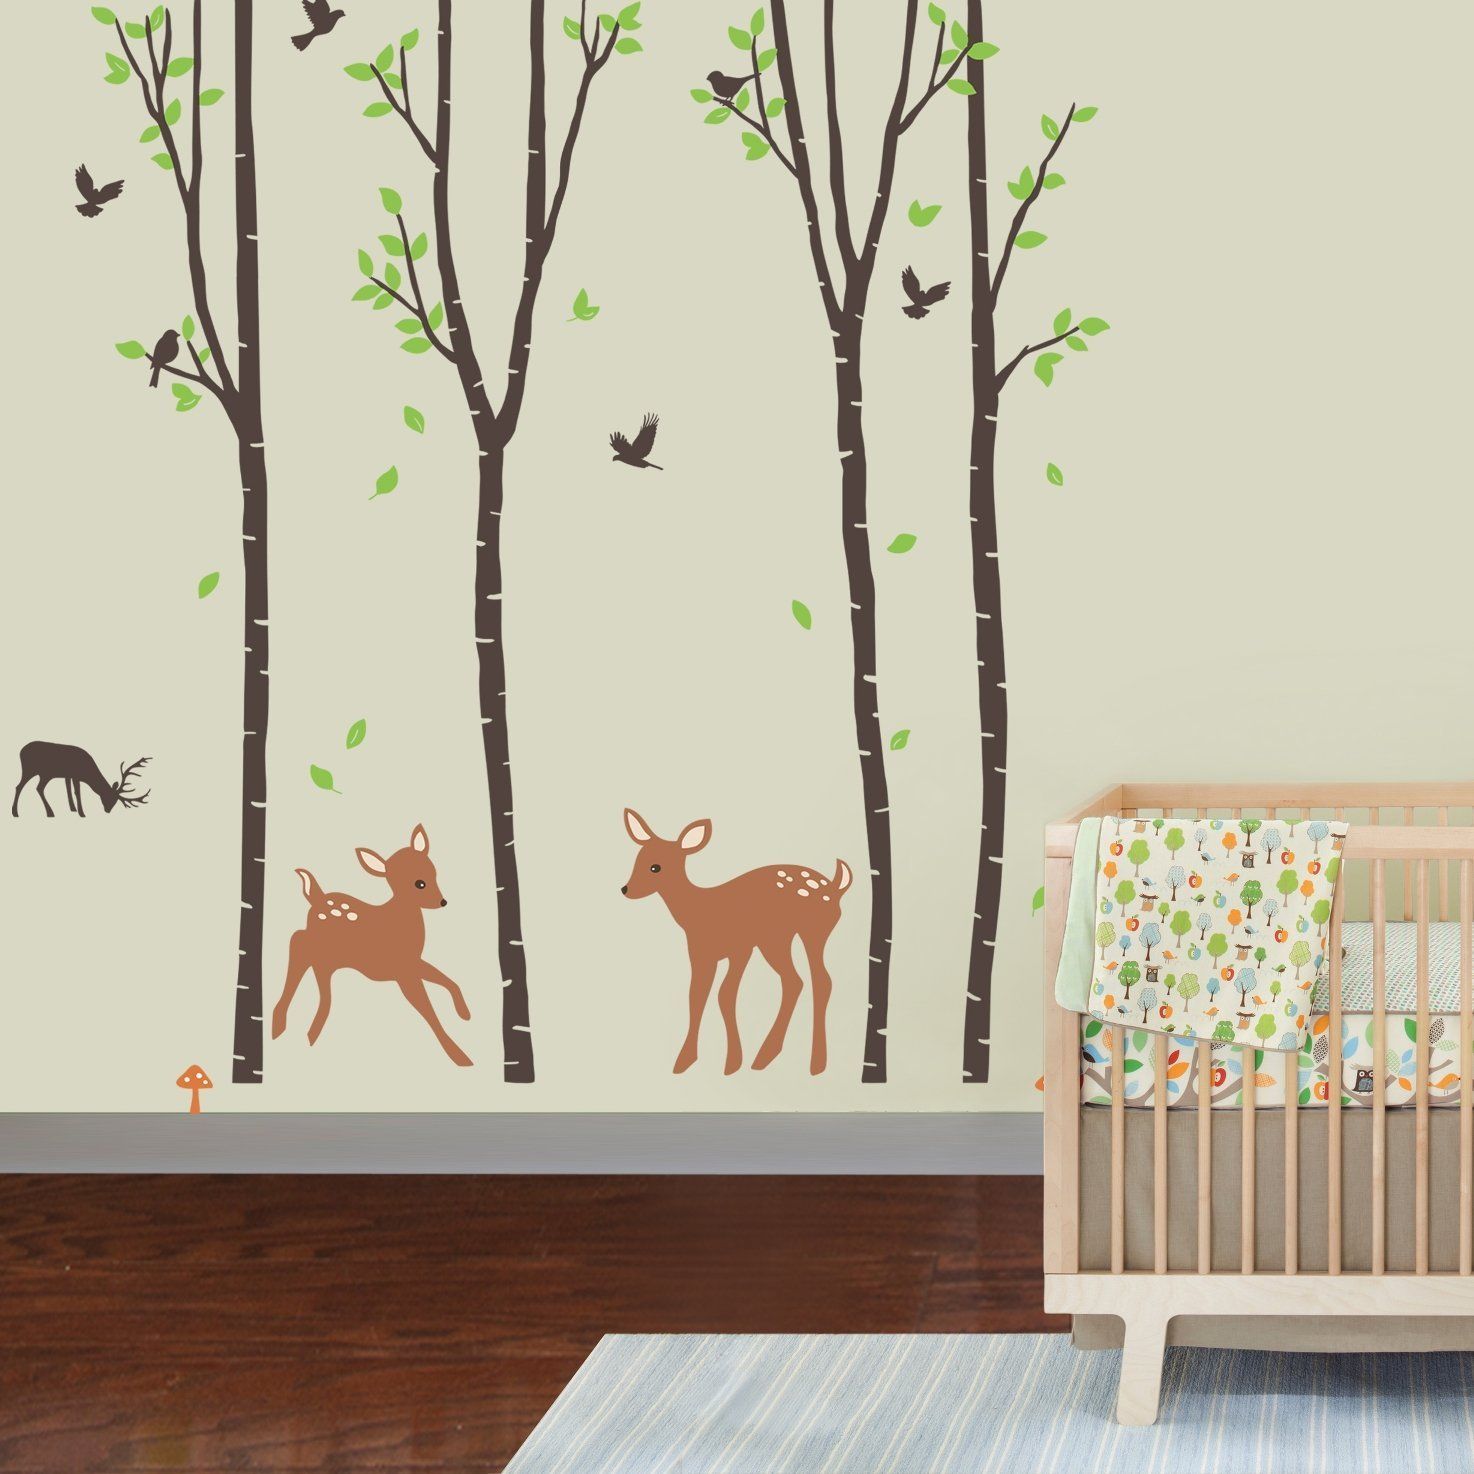 Giant Wall Sticker Decals Birch Tree Forest With Deers And - Nursery wall decals animals